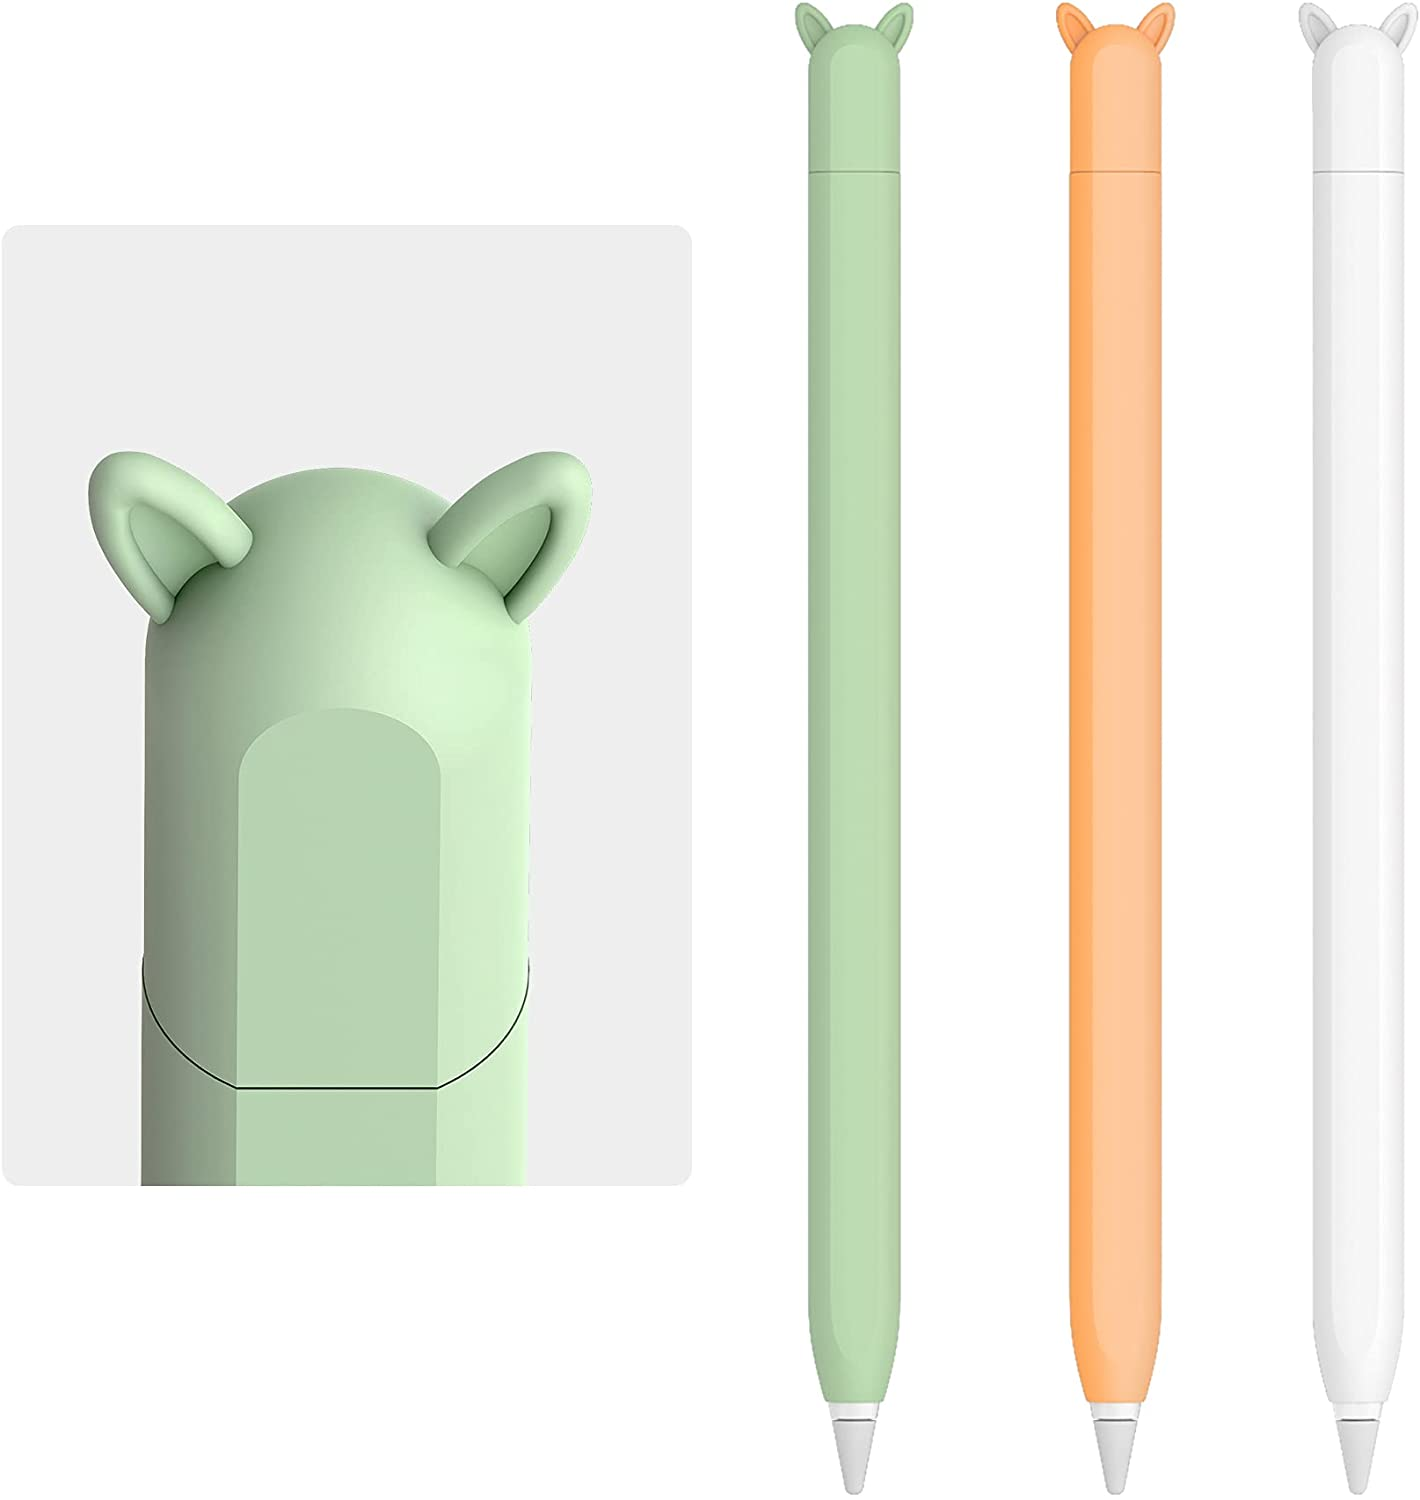 3 Pack Cute Ear Case Silicone Skin Cover for Apple Pencil 2nd Generation Accessories Compatible with iPad Pro 11 12.9 inch(White, Orange,Green)